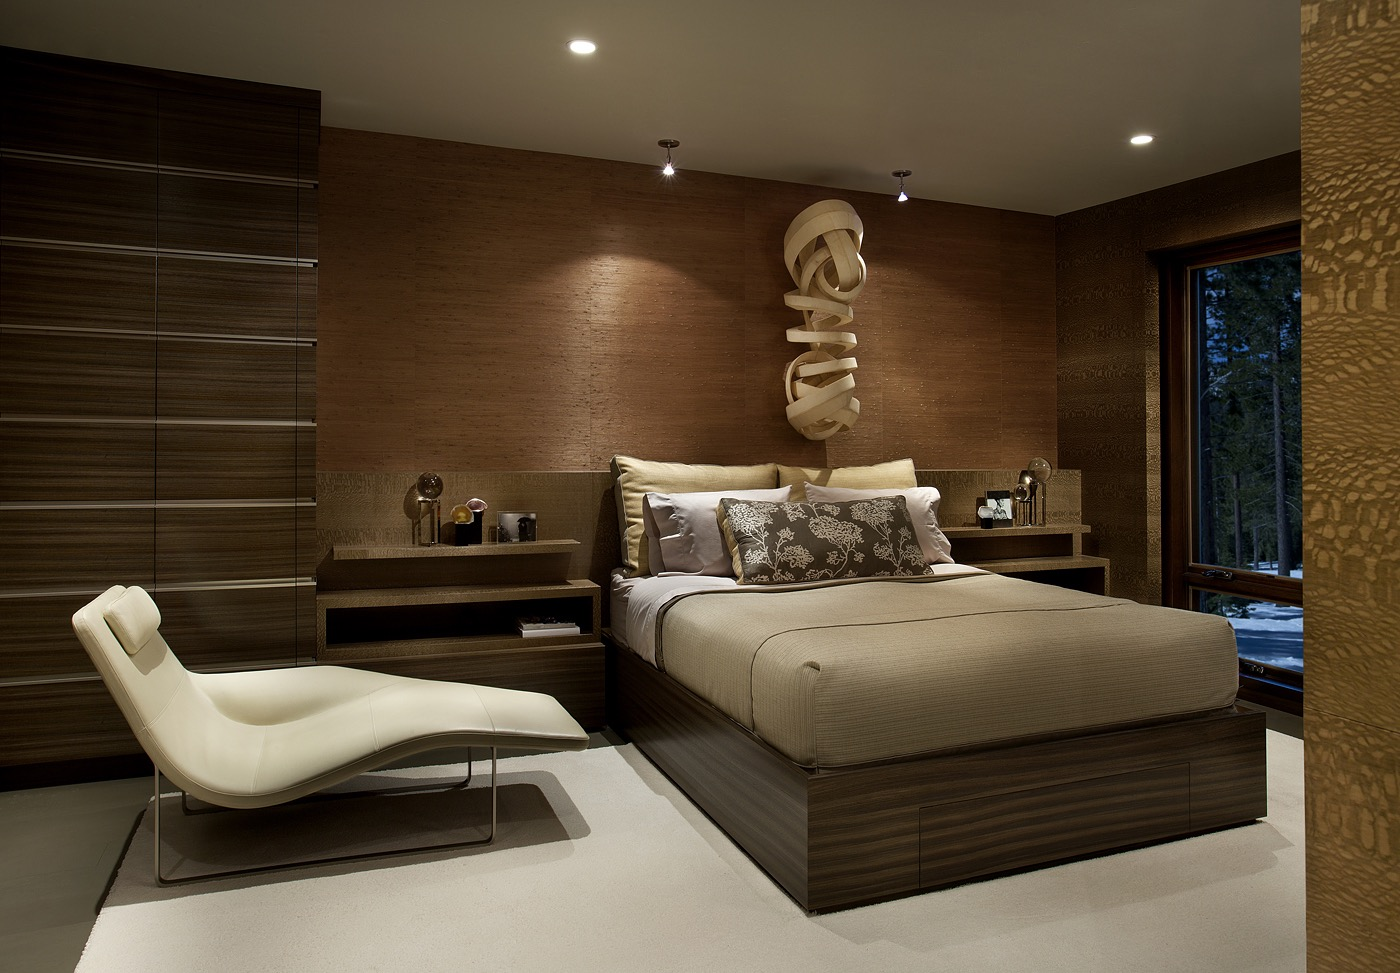 2017 Modern Bedroom In Warm Brown Tones (Image 1 of 23)